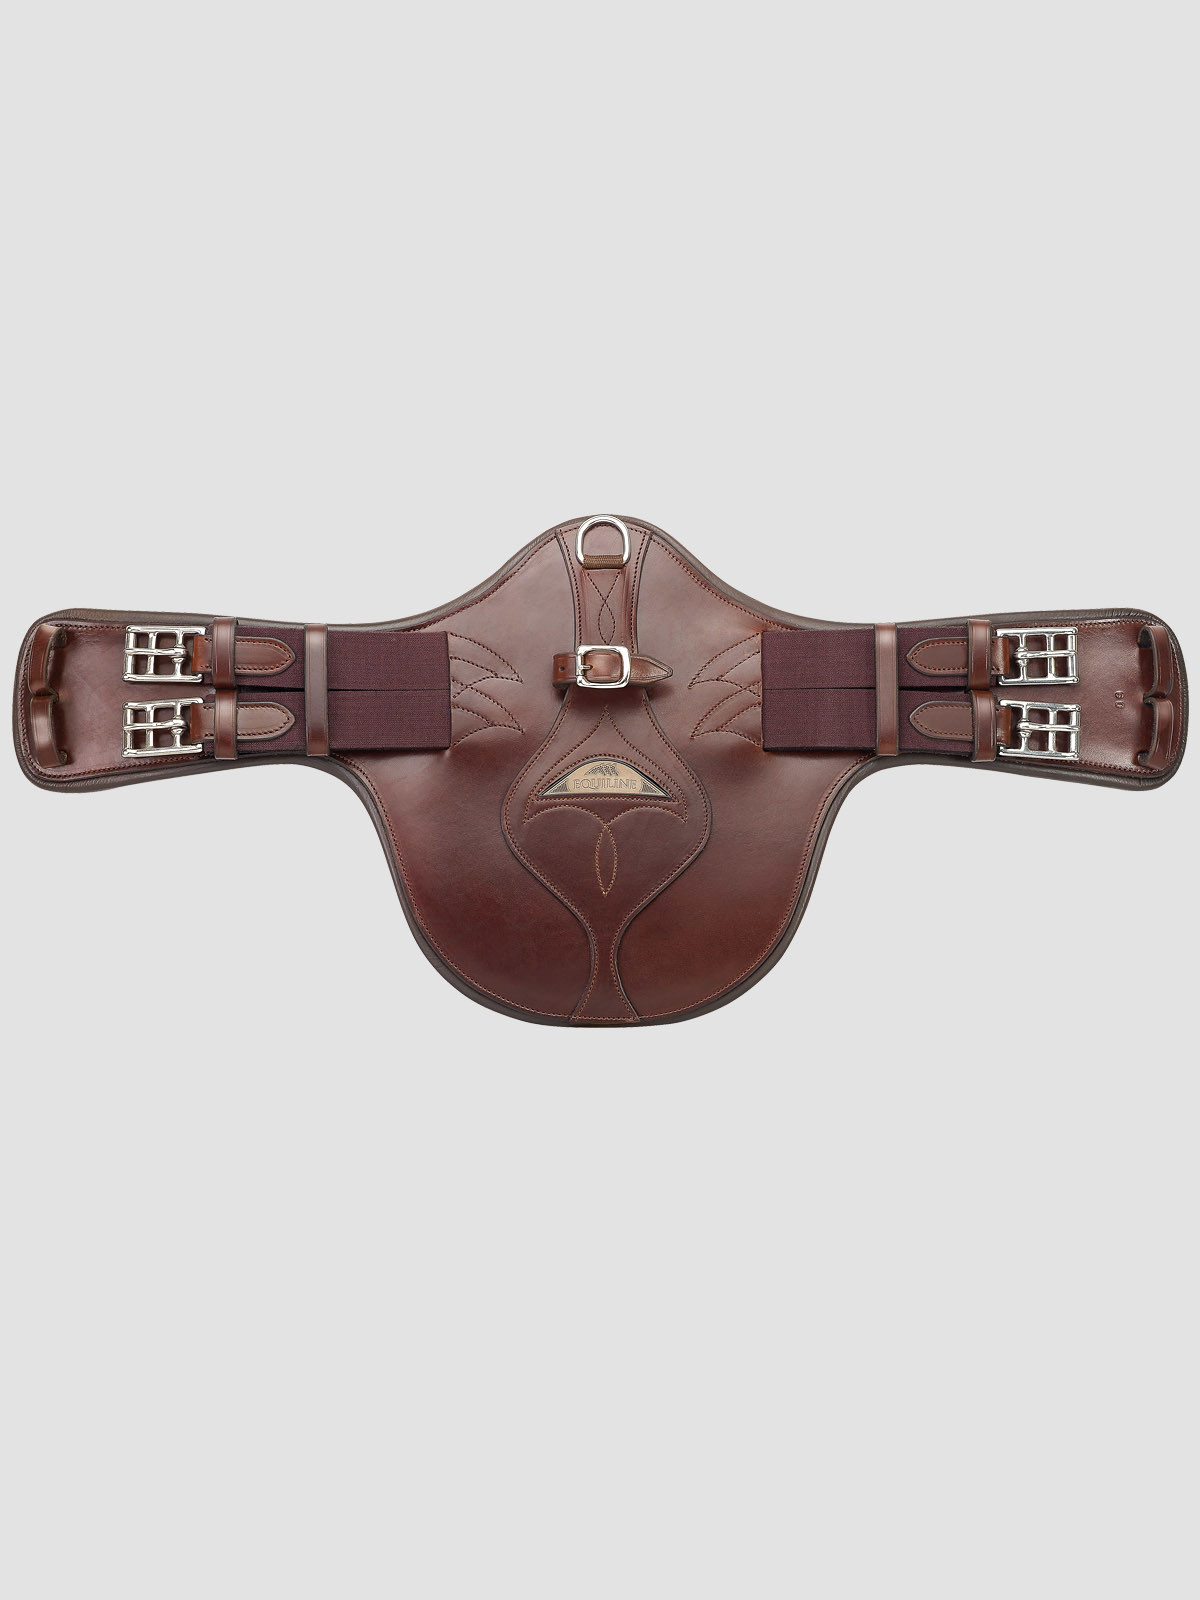 Brown equiline monoflap belly guard girth